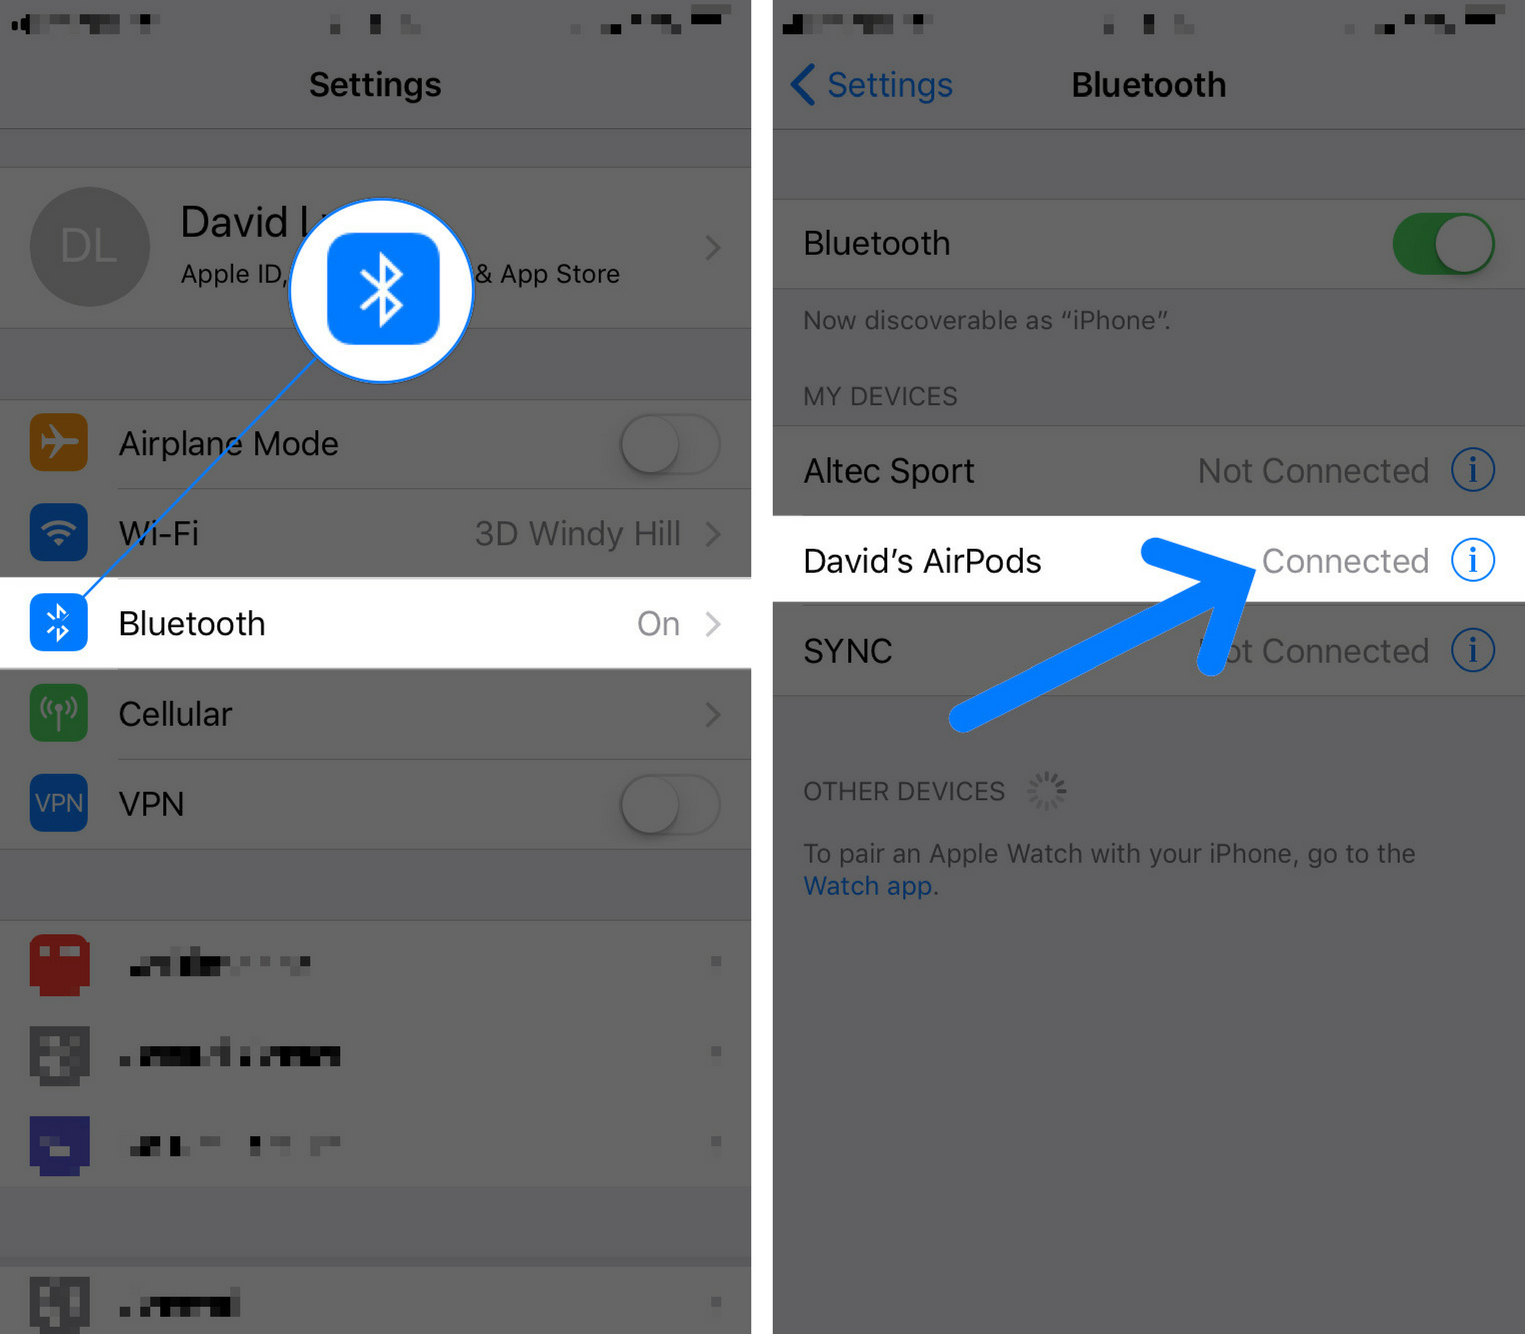 iphone stuck in headphone mode because of bluetooth